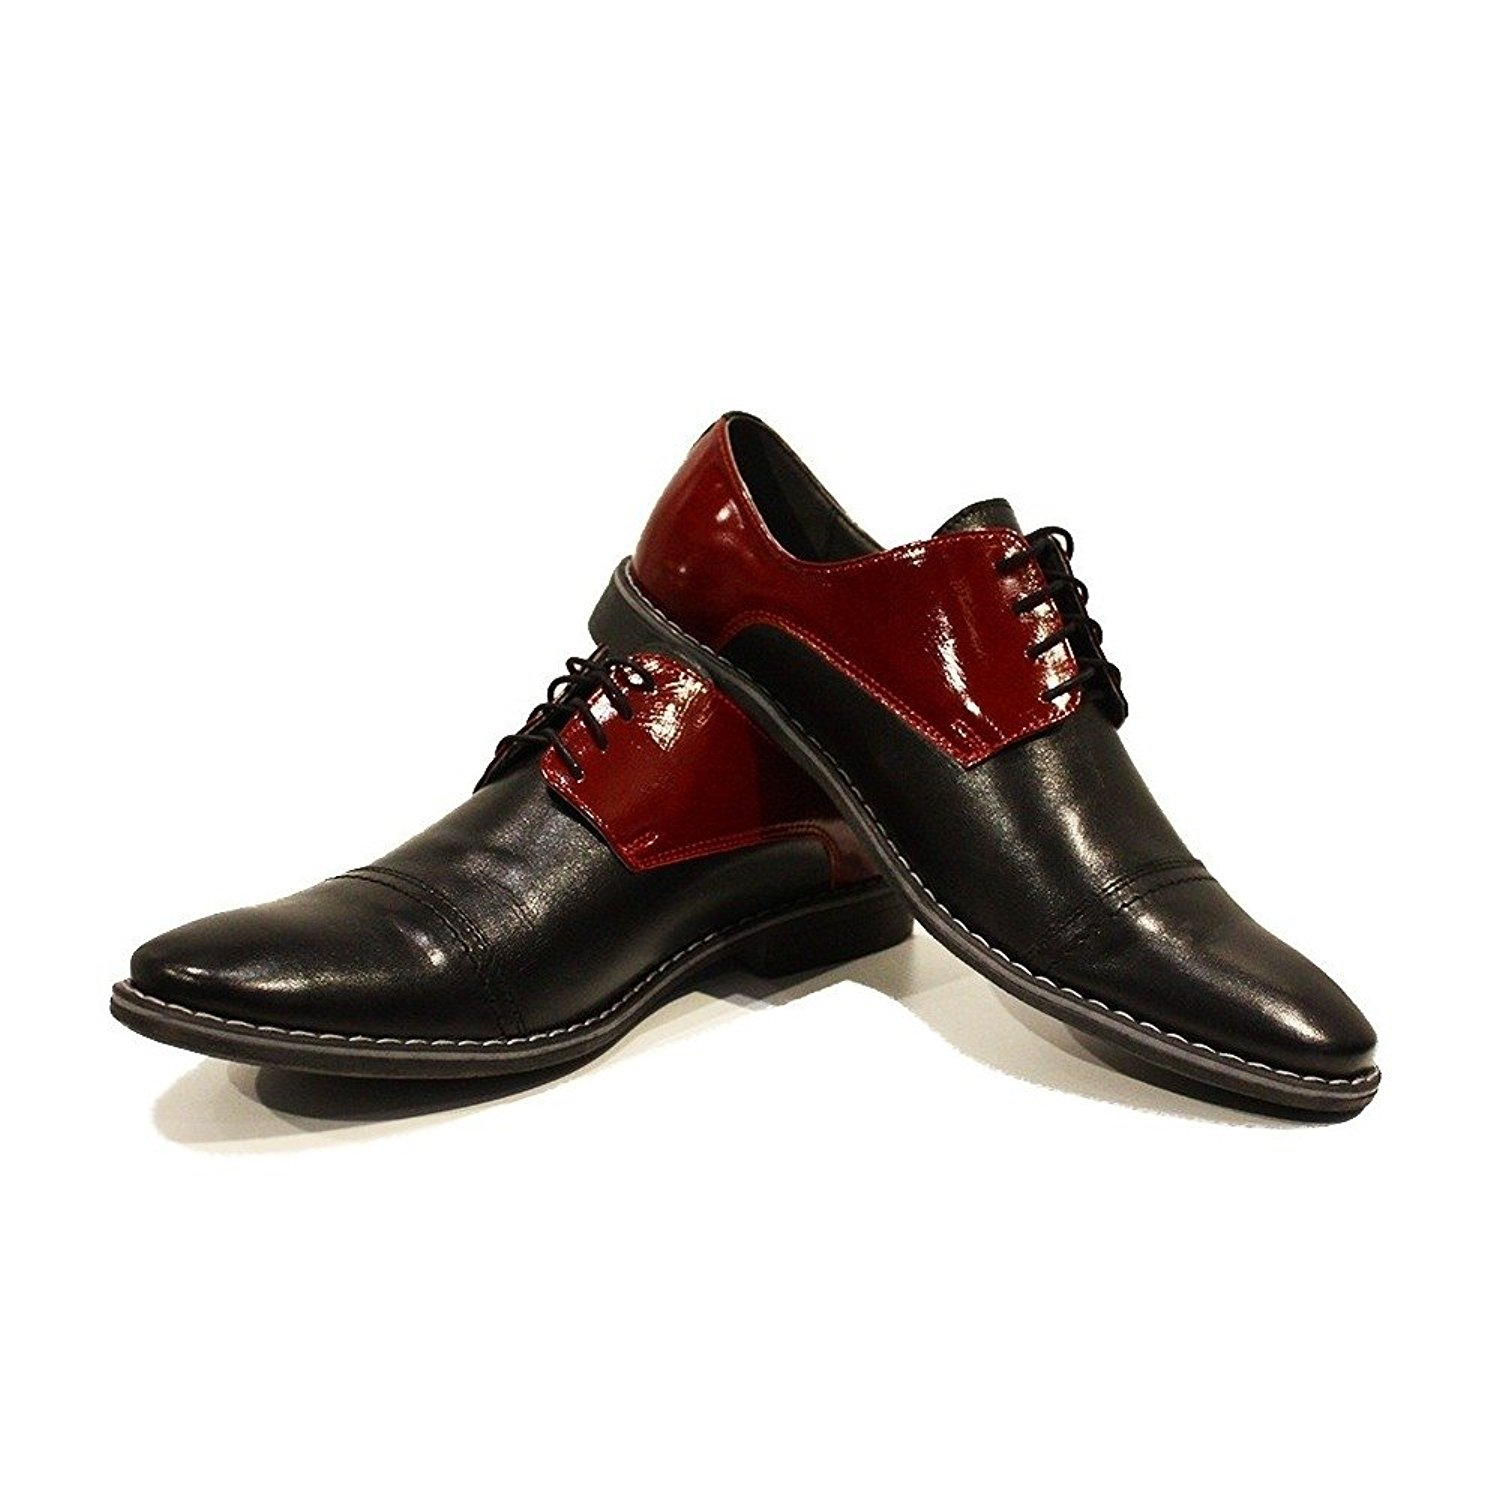 Modello Albino - Handmade Italian Mens Burgundy Oxfords Dress Shoes - Cowhide Smooth Leather - Lace-up